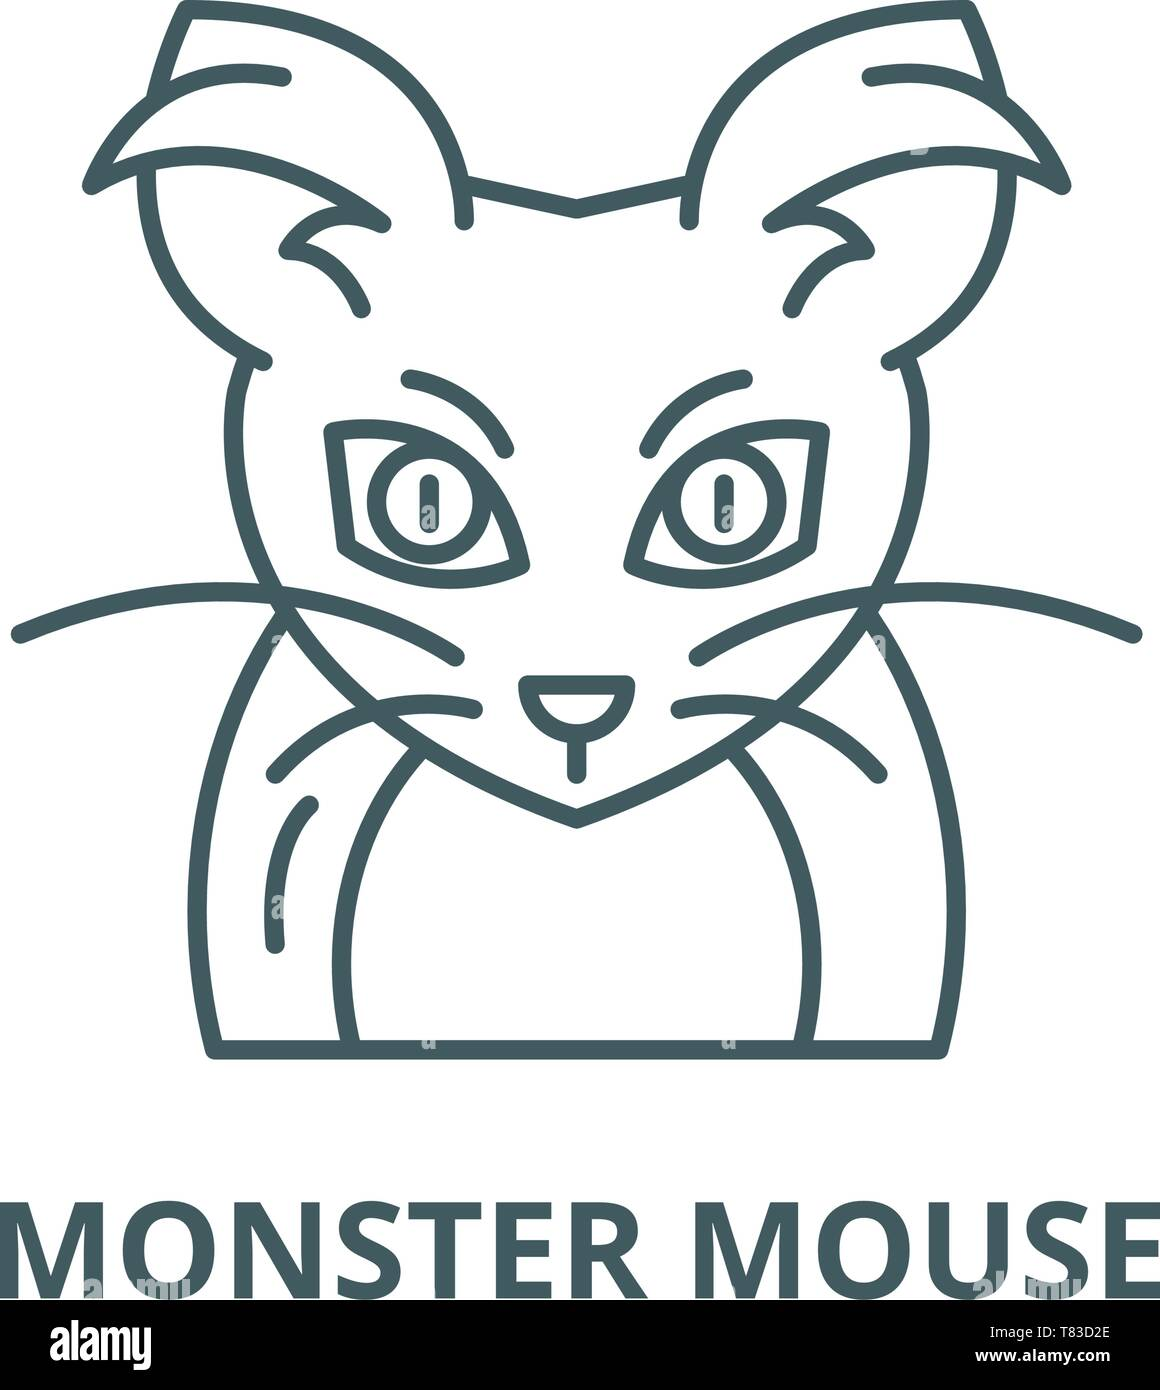 Monster mouse vector line icon, linear concept, outline sign, symbol - Stock Vector